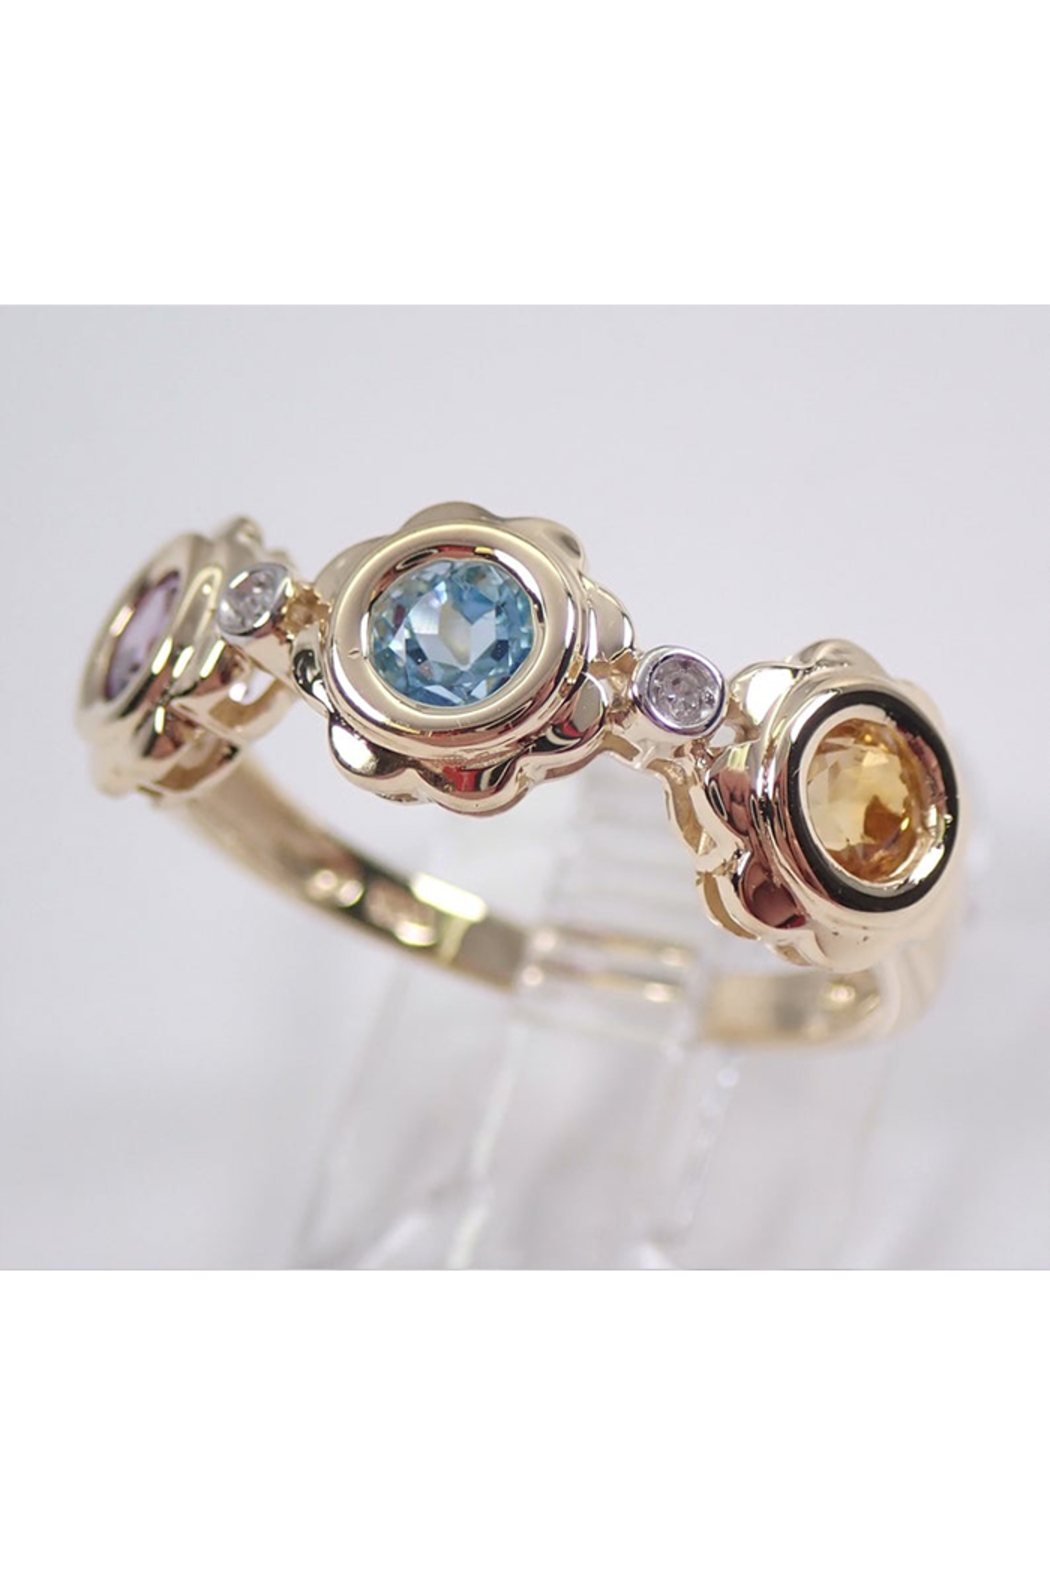 Margolin & Co Yellow Gold Multi Color Flower Wedding Ring Anniversary Band Citrine Blue Topaz Amethyst FREE Sizing - Side Cropped Image